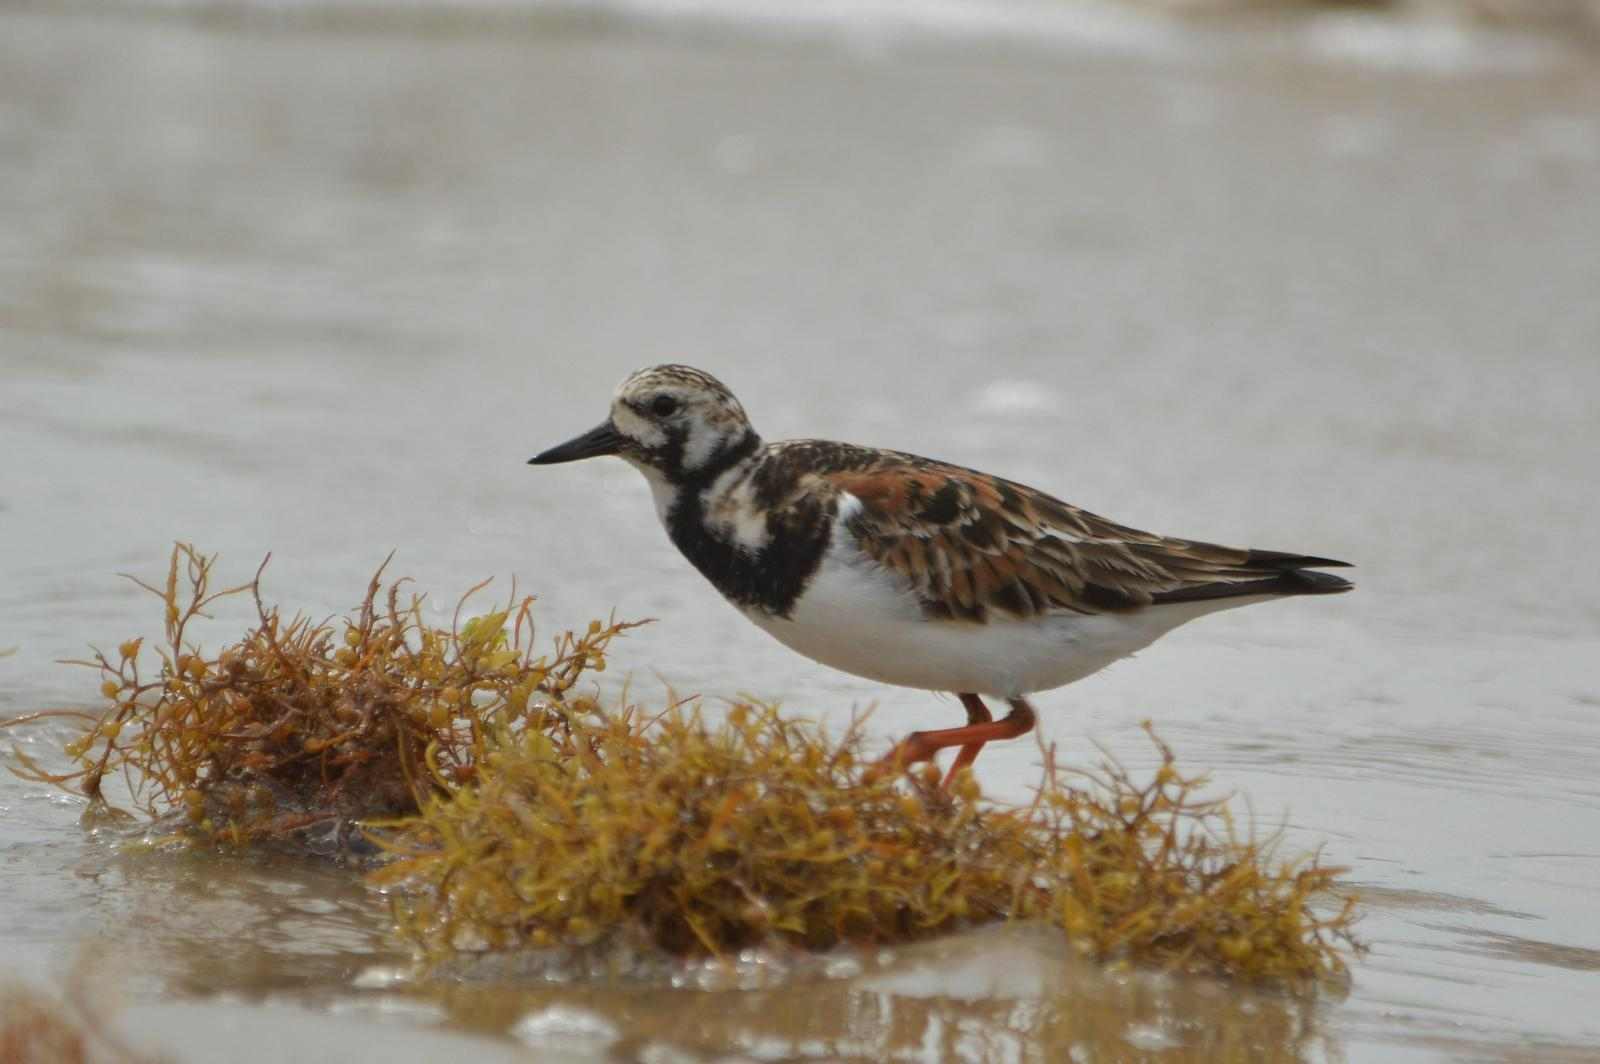 Ruddy Turnstone Photo by Jeannette Piecznski